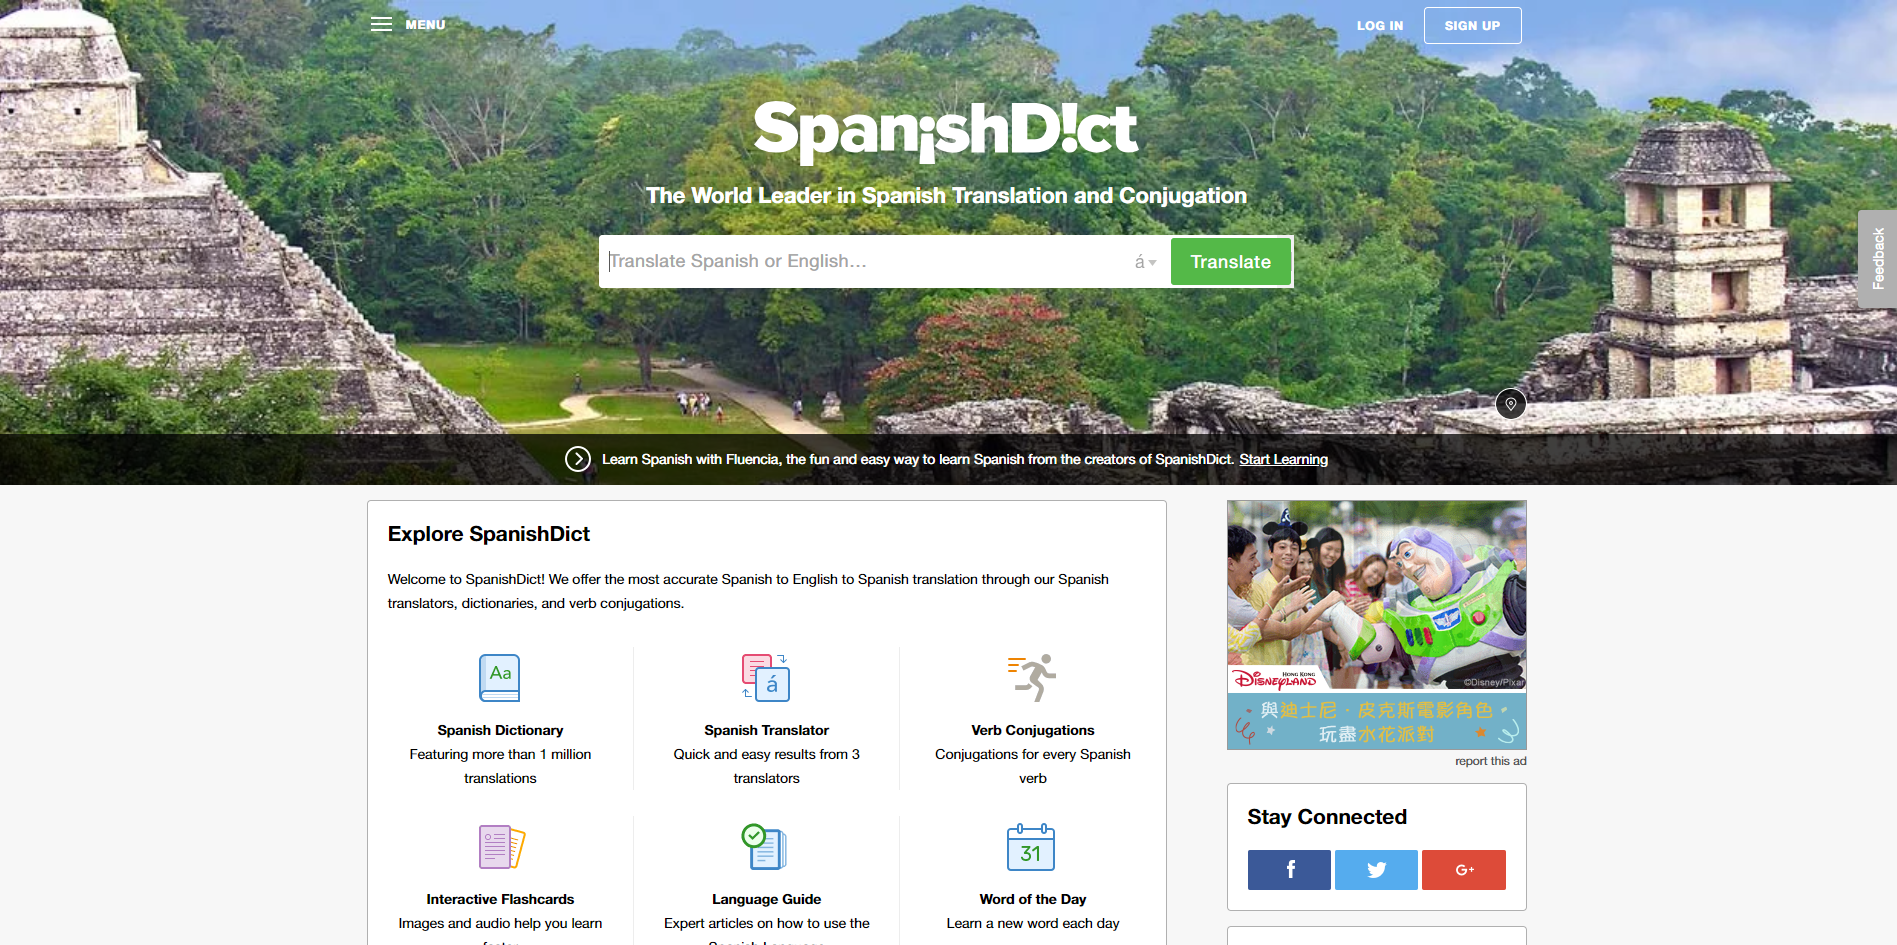 homepage of spanishdict